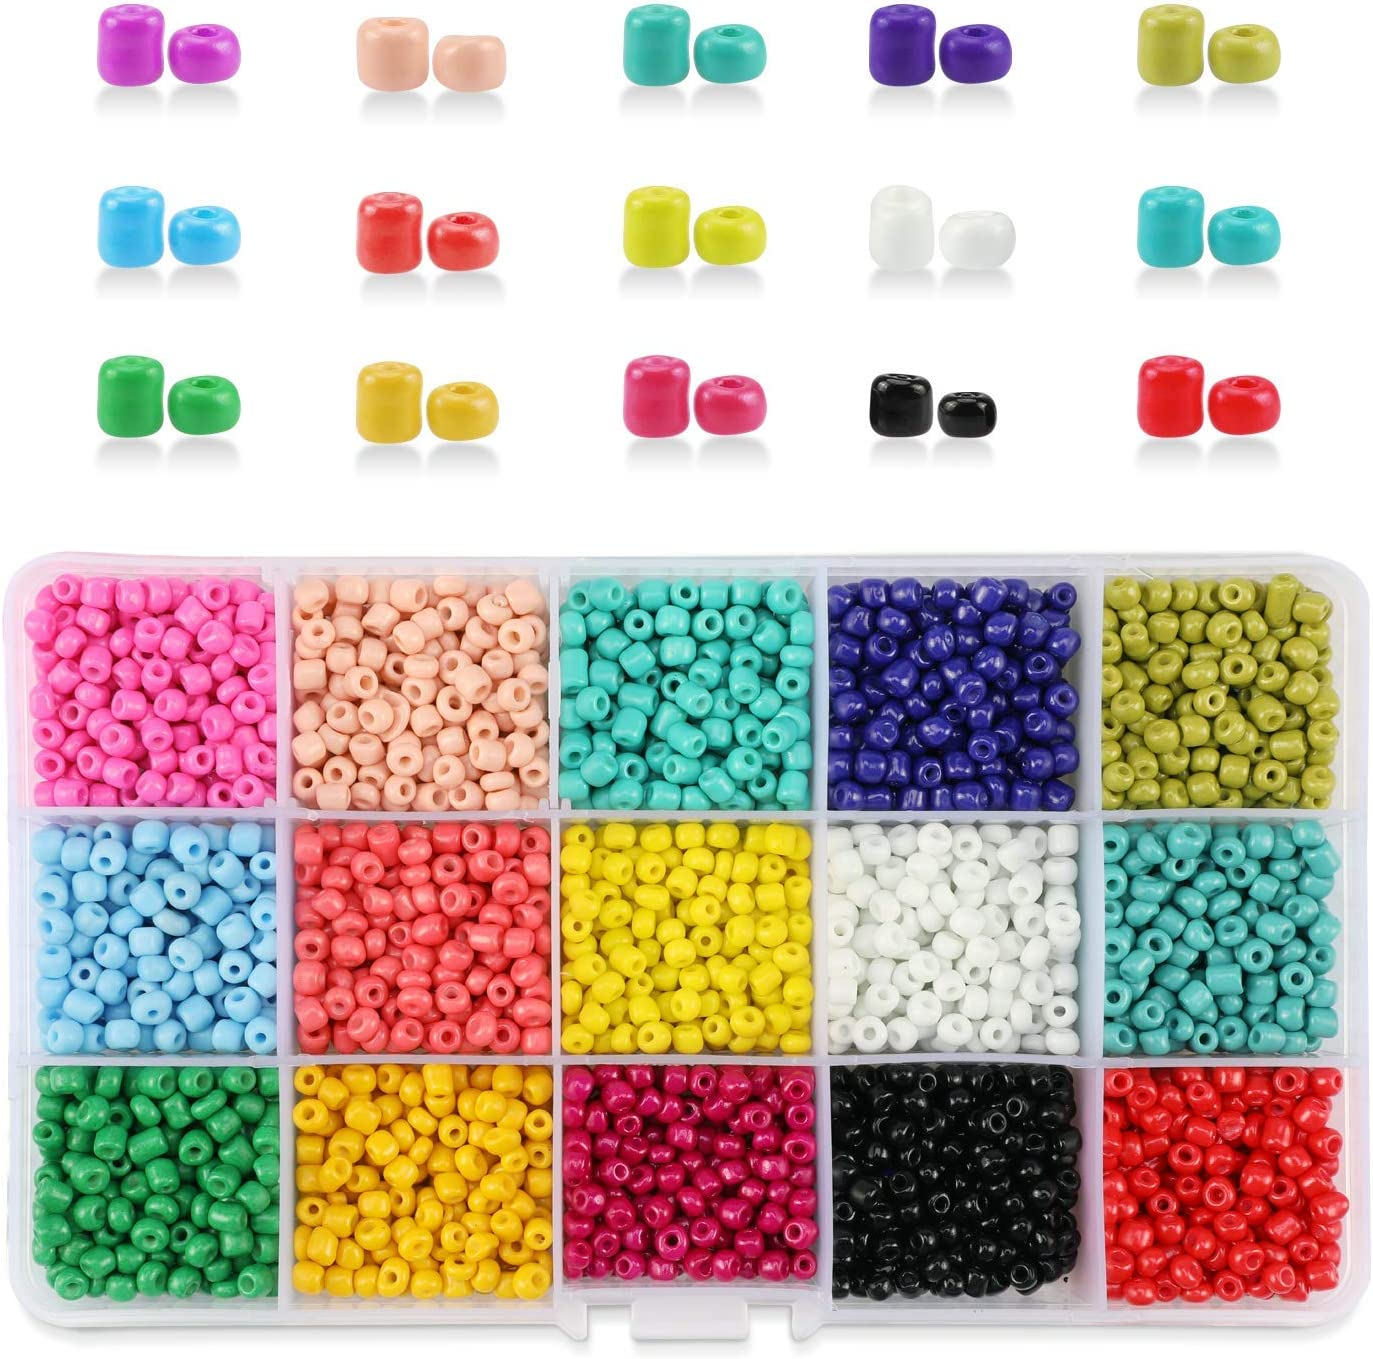 Mixed Colors Small Pony Beads Assorted Kit Mul Phogary 3500Pcs Glass Seed Beads